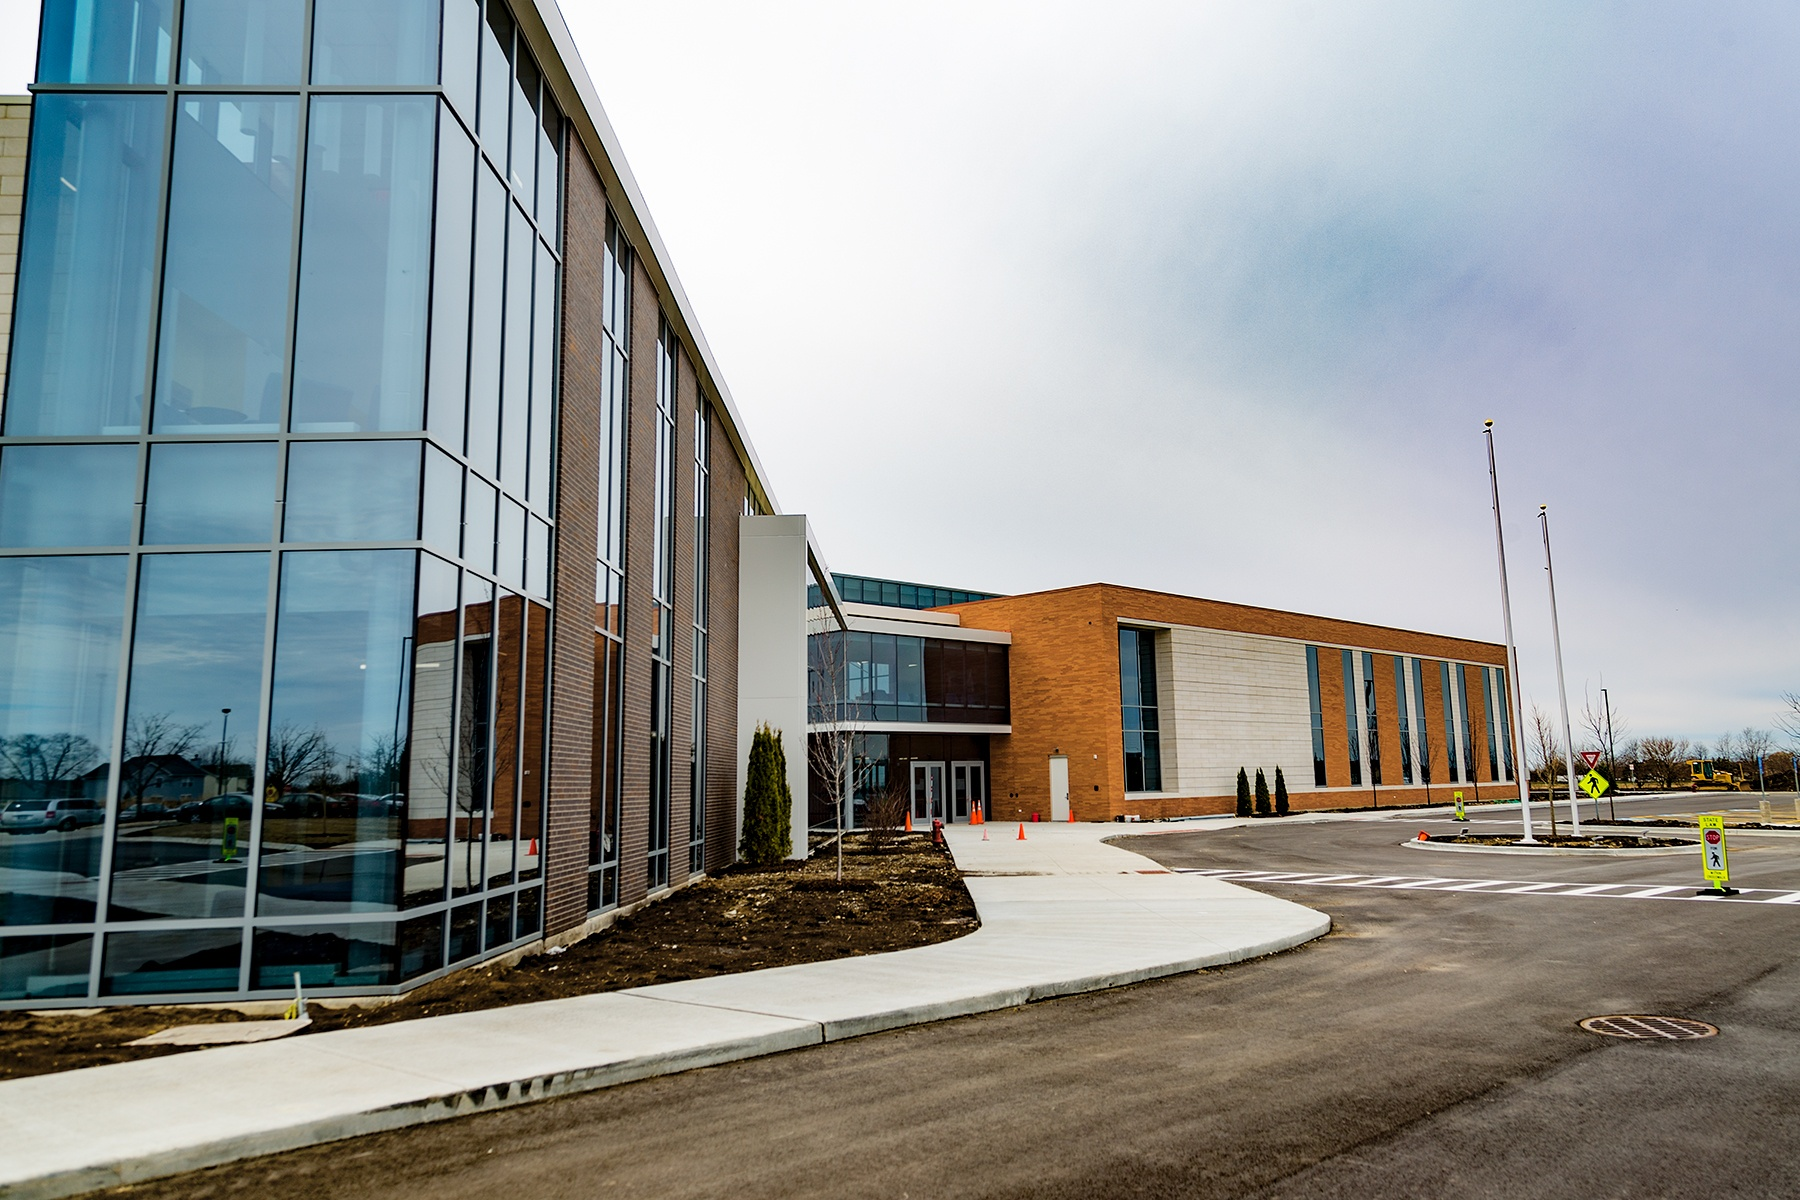 7 Things You Didn't Know About JJC Extended Campuses Morris Romeoville Joliet romeoville campus